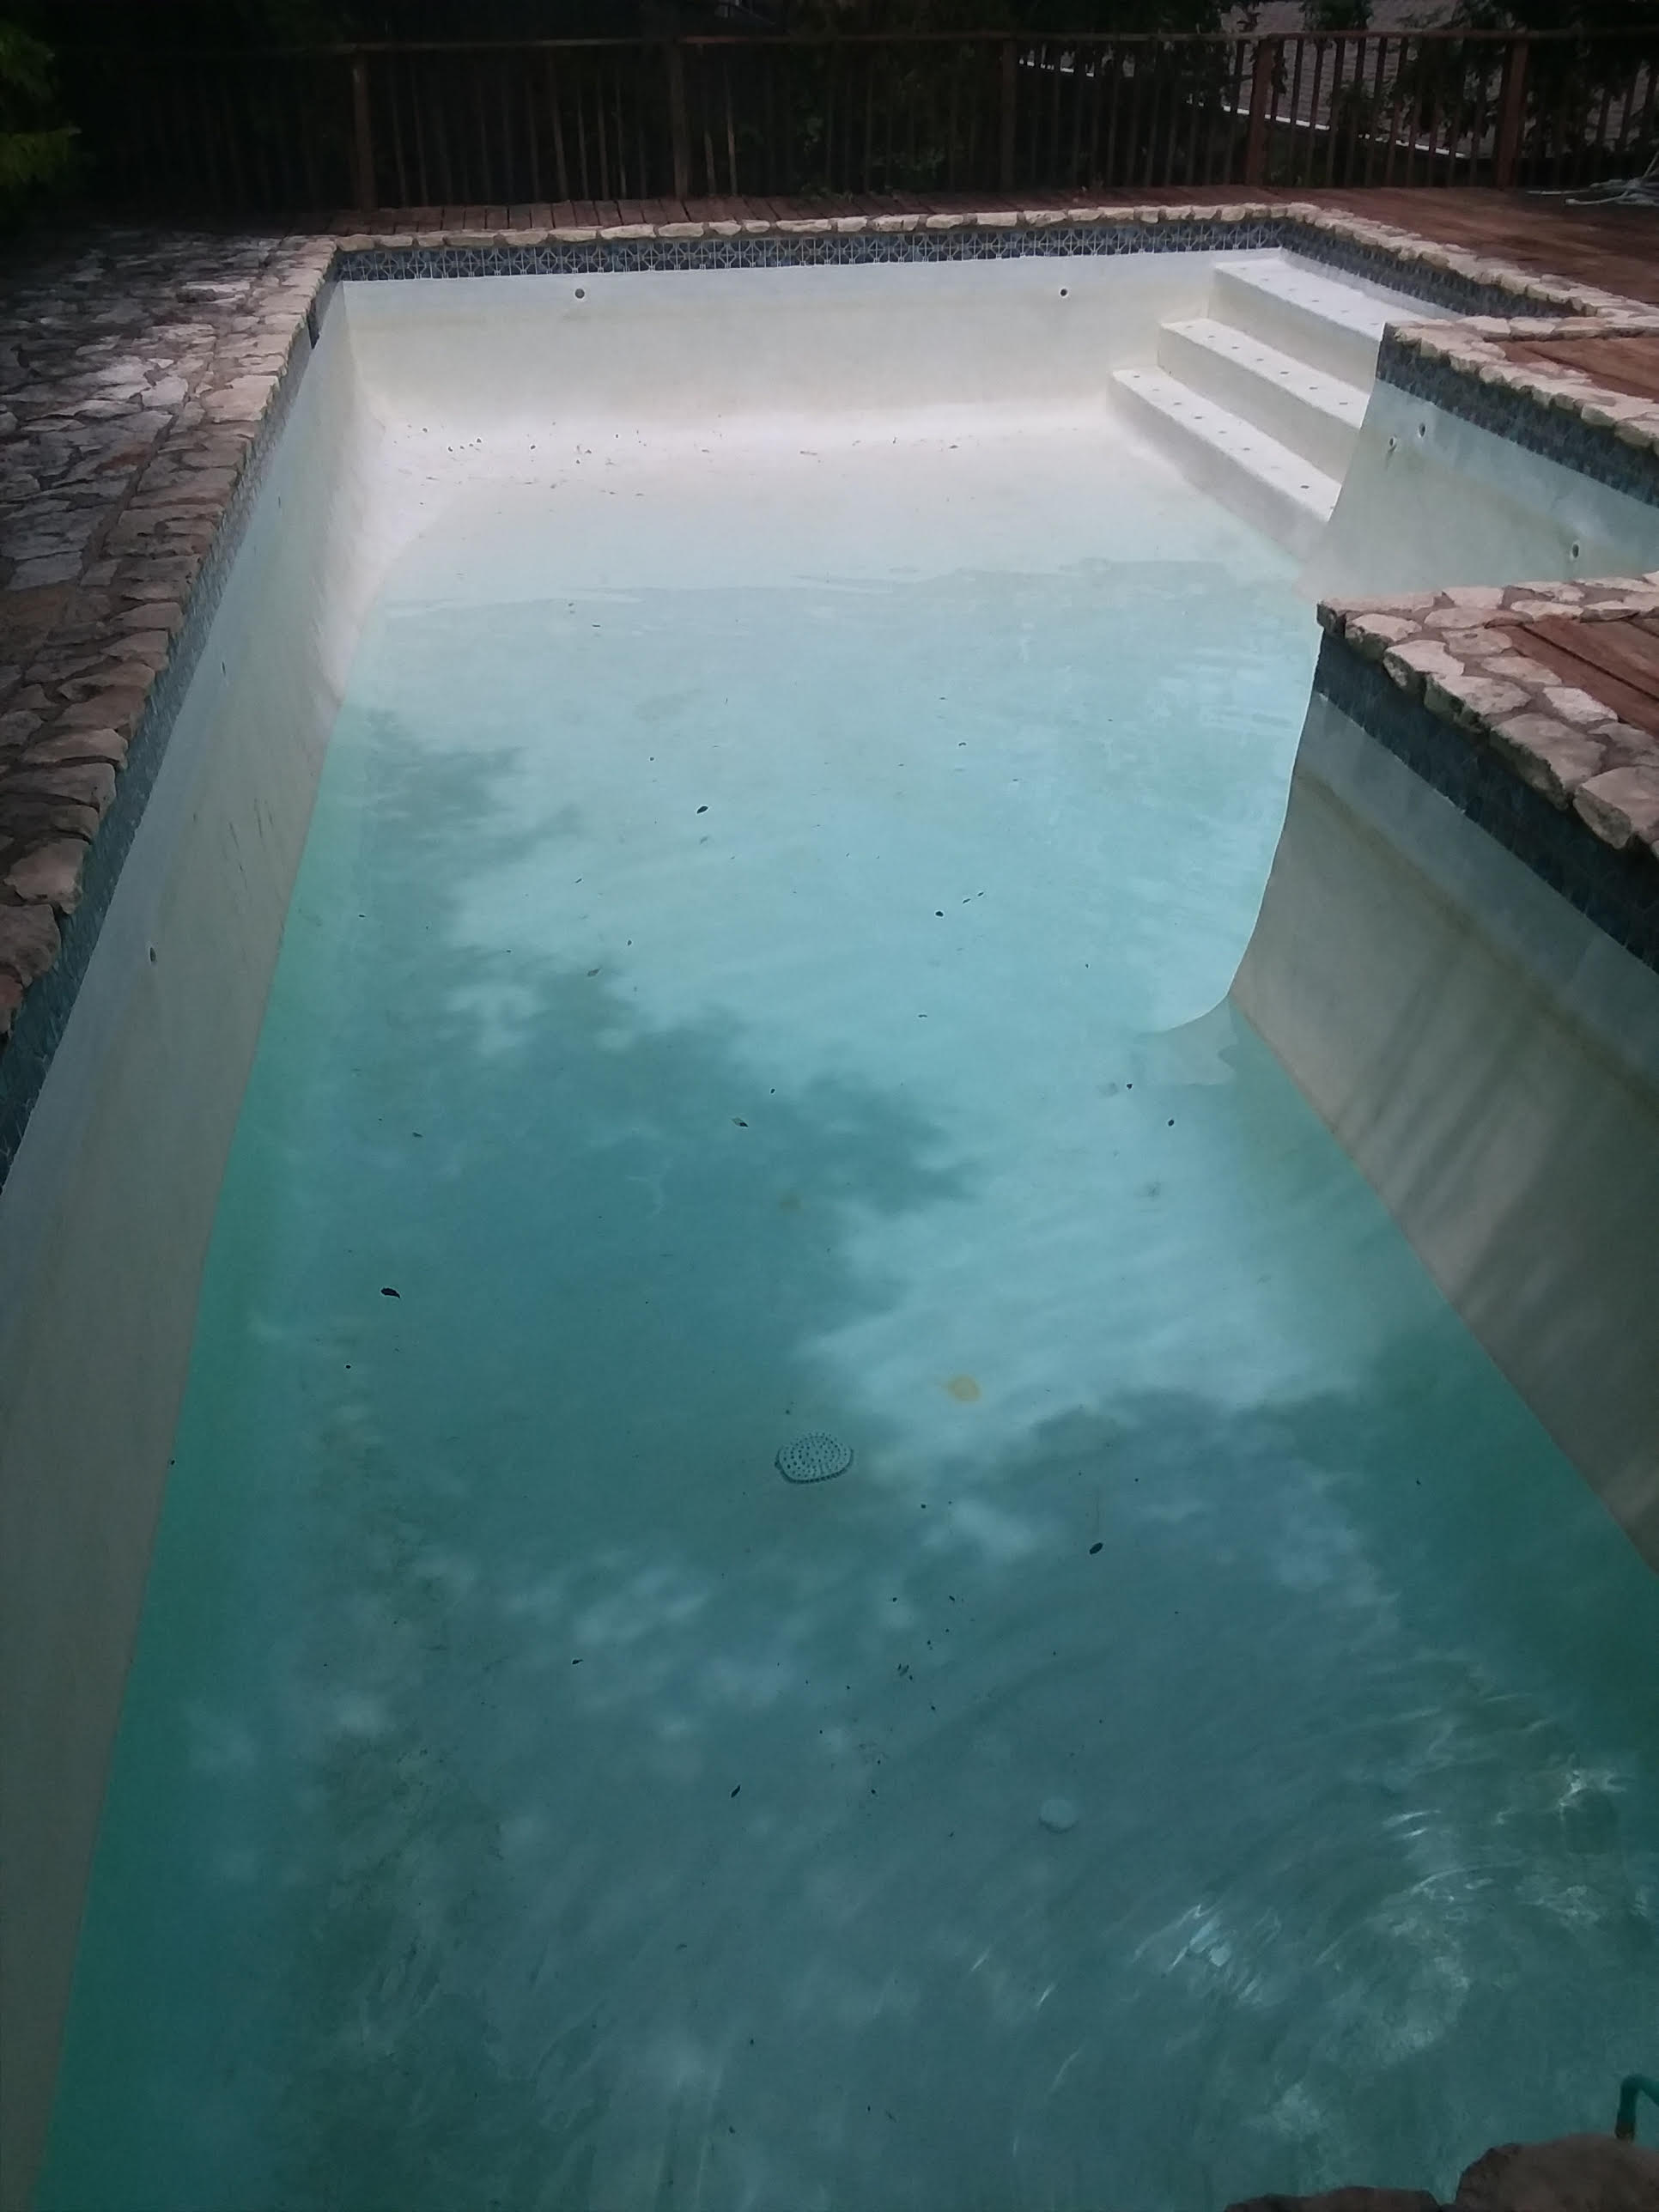 AUGUST 6 - 2018 POOL - 208 WESTHAVEN DRIVE BEING FILLED [ PHOTO AS OF AUGUST 6 2018, 1-15 PM CST AUSTIN TEXAS USA TIME